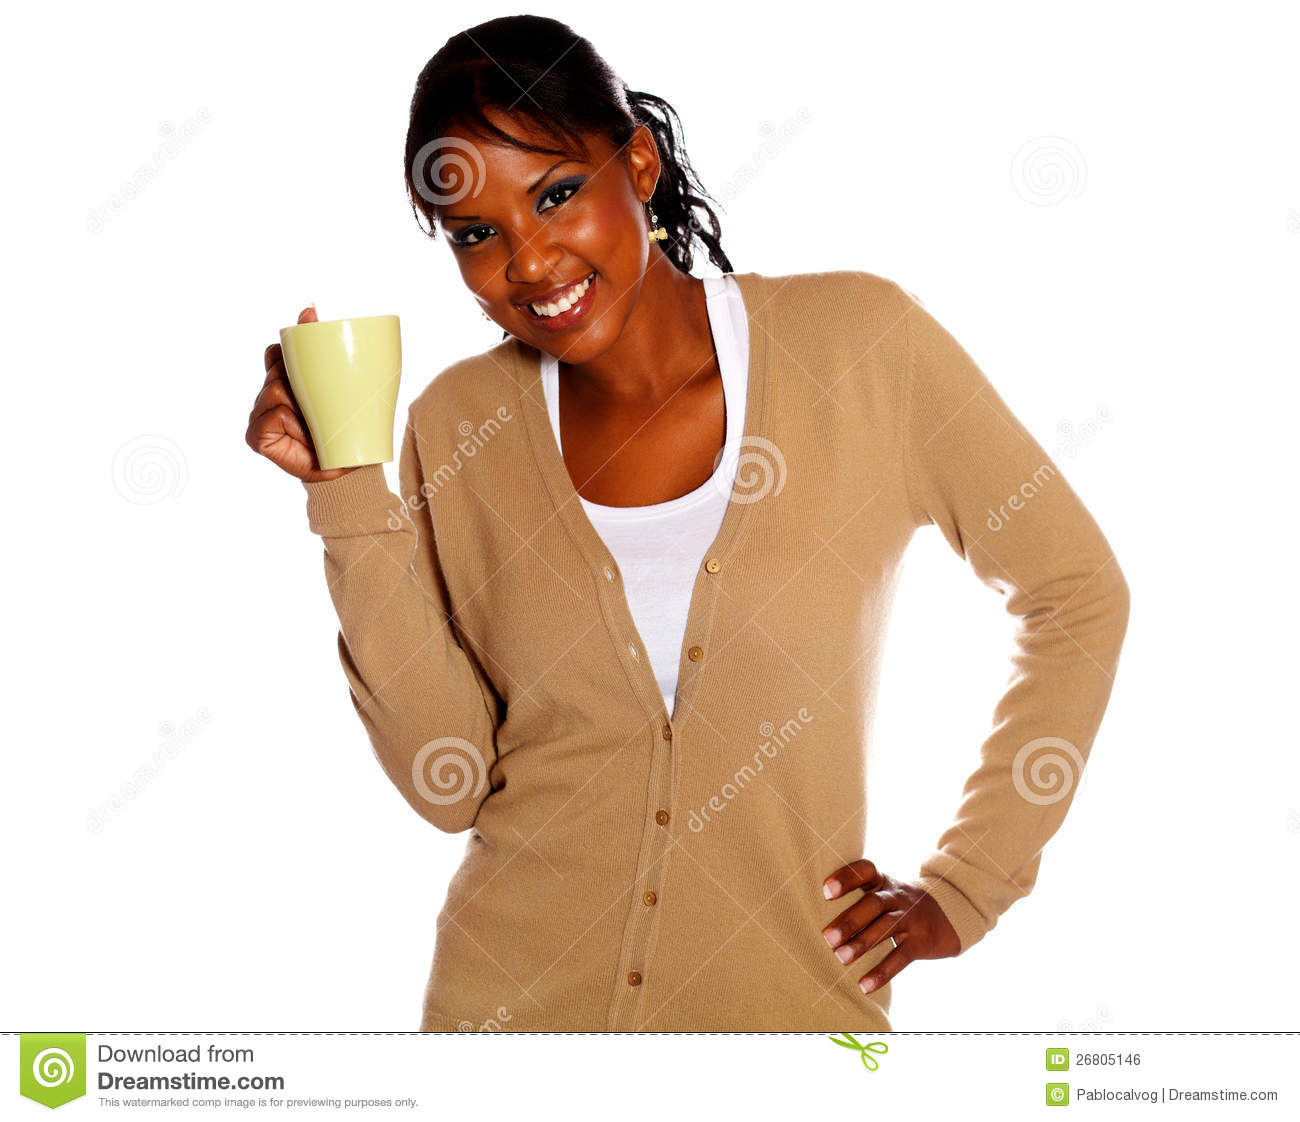 Afro-american young woman holding a mug